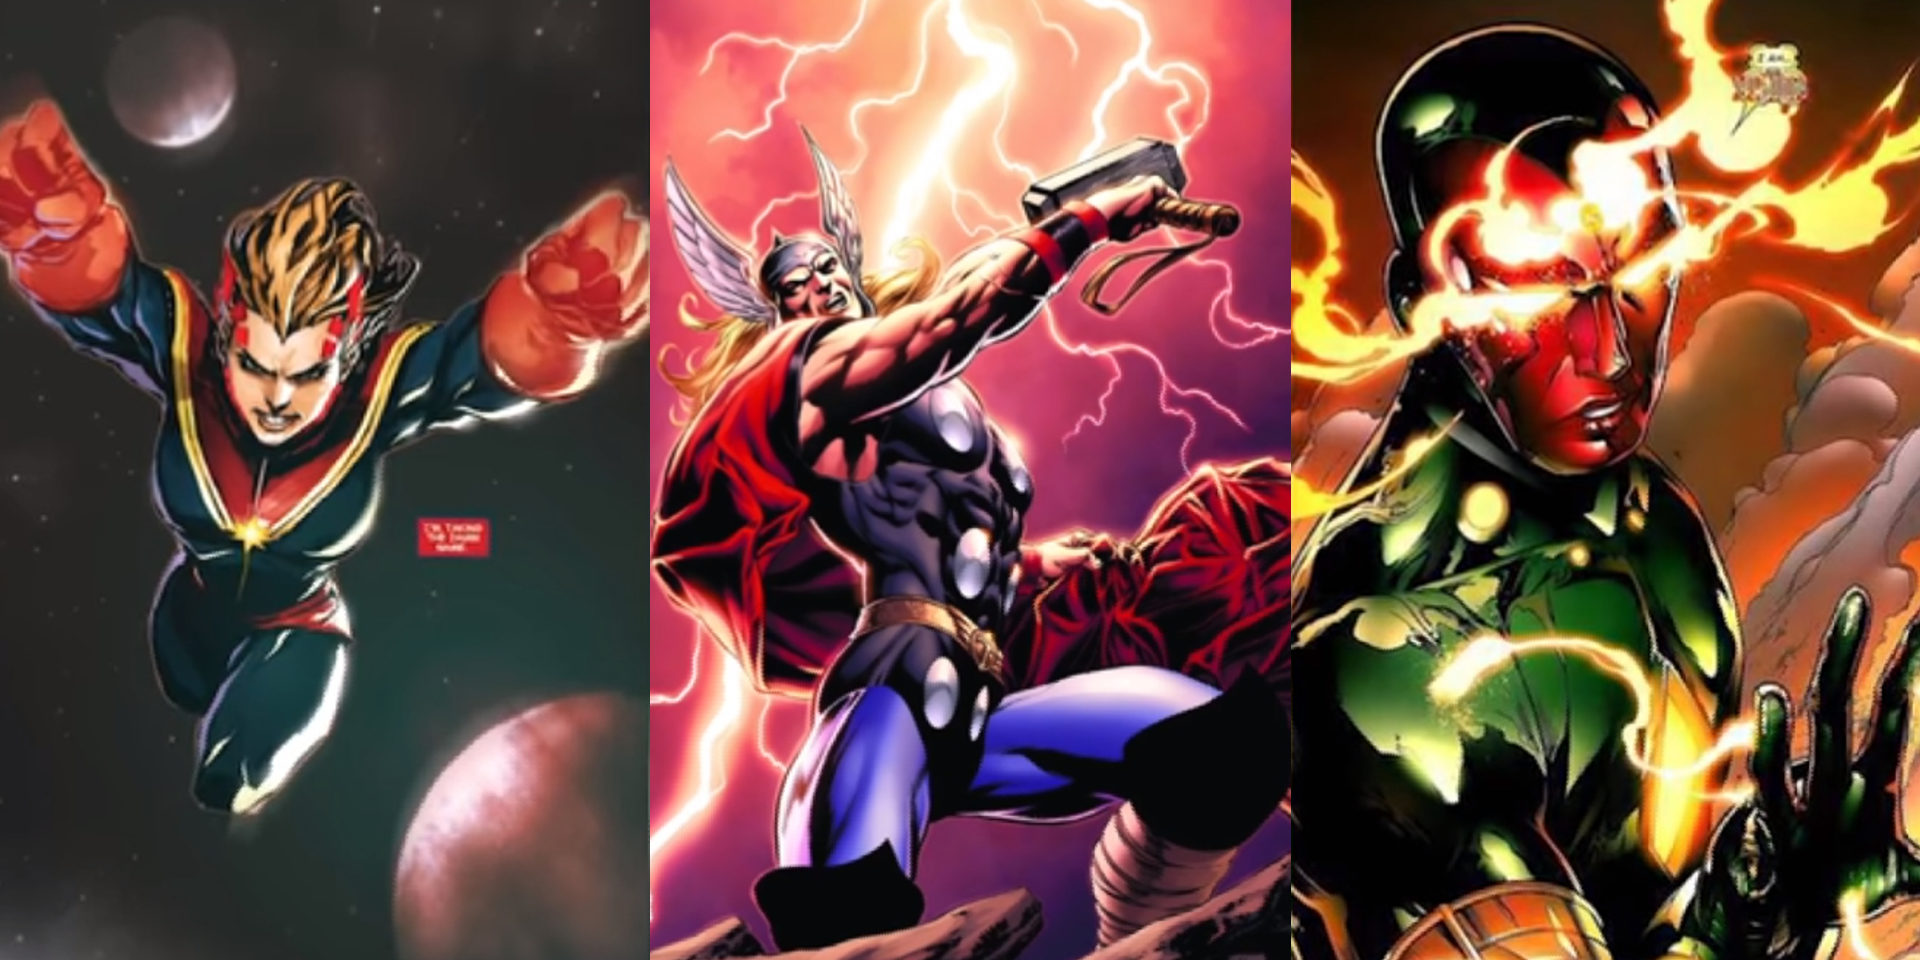 These powerhouse Marvel heroes pack serious punch